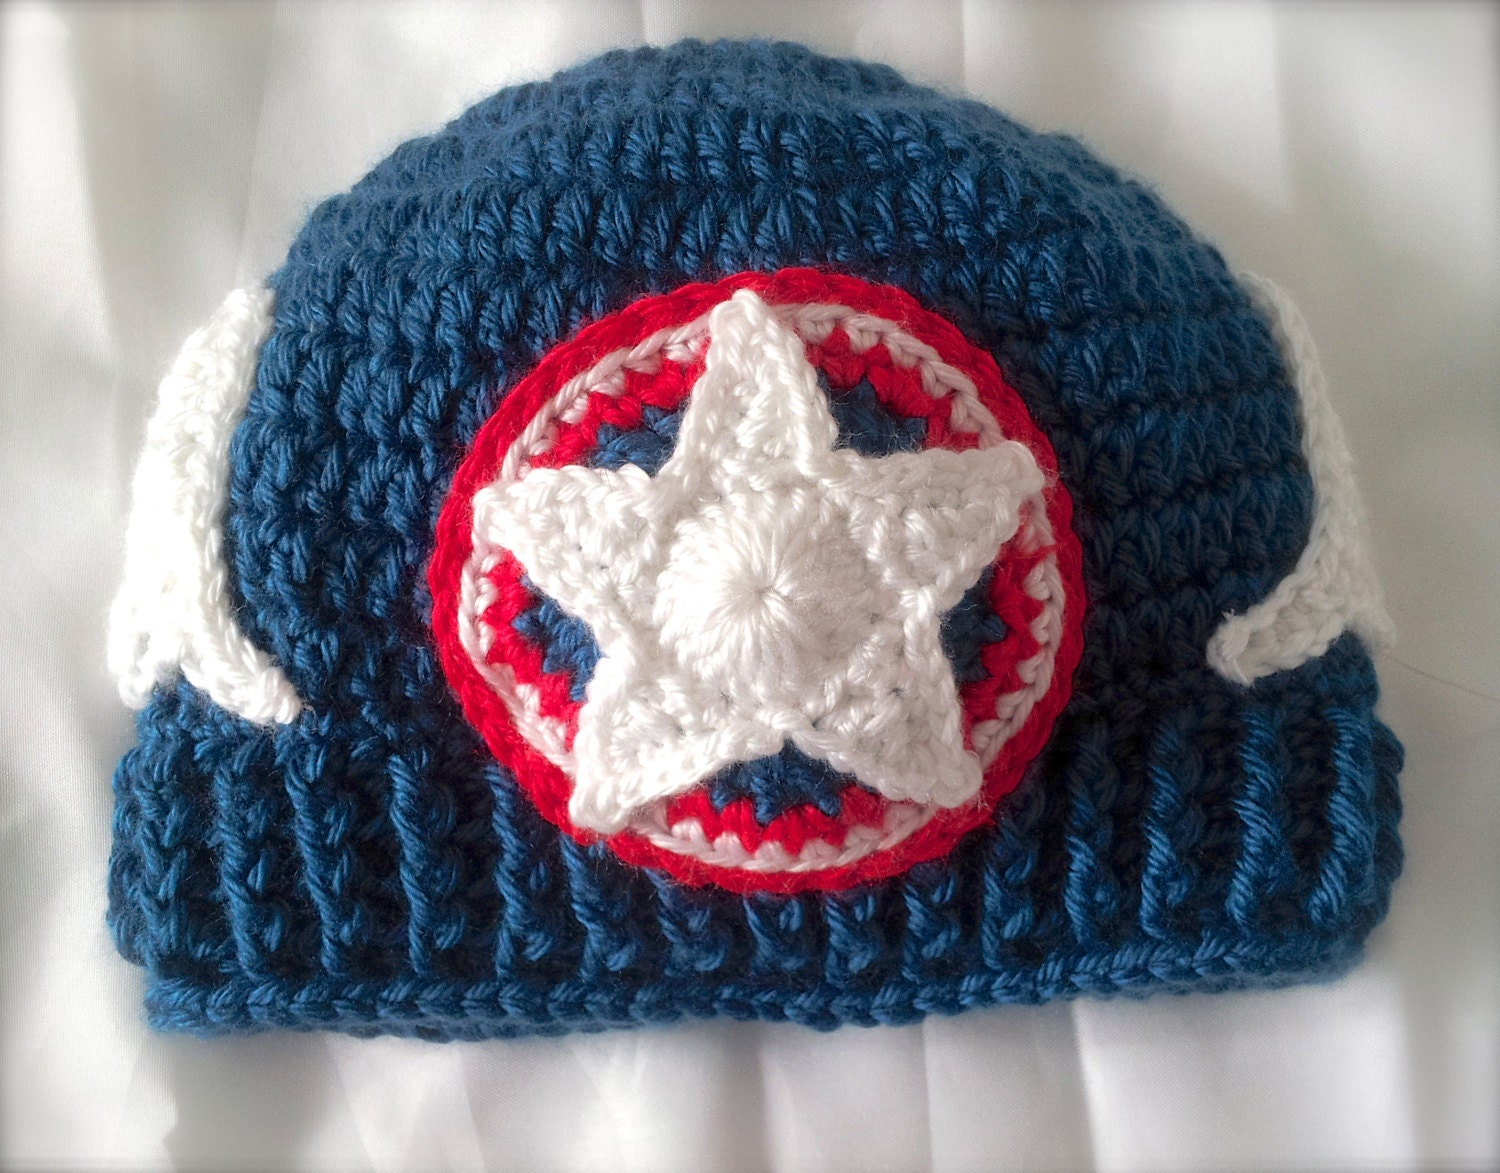 Captain America Knitting Pattern : Crochet Captain America Inspired Hat Red White and Blue with